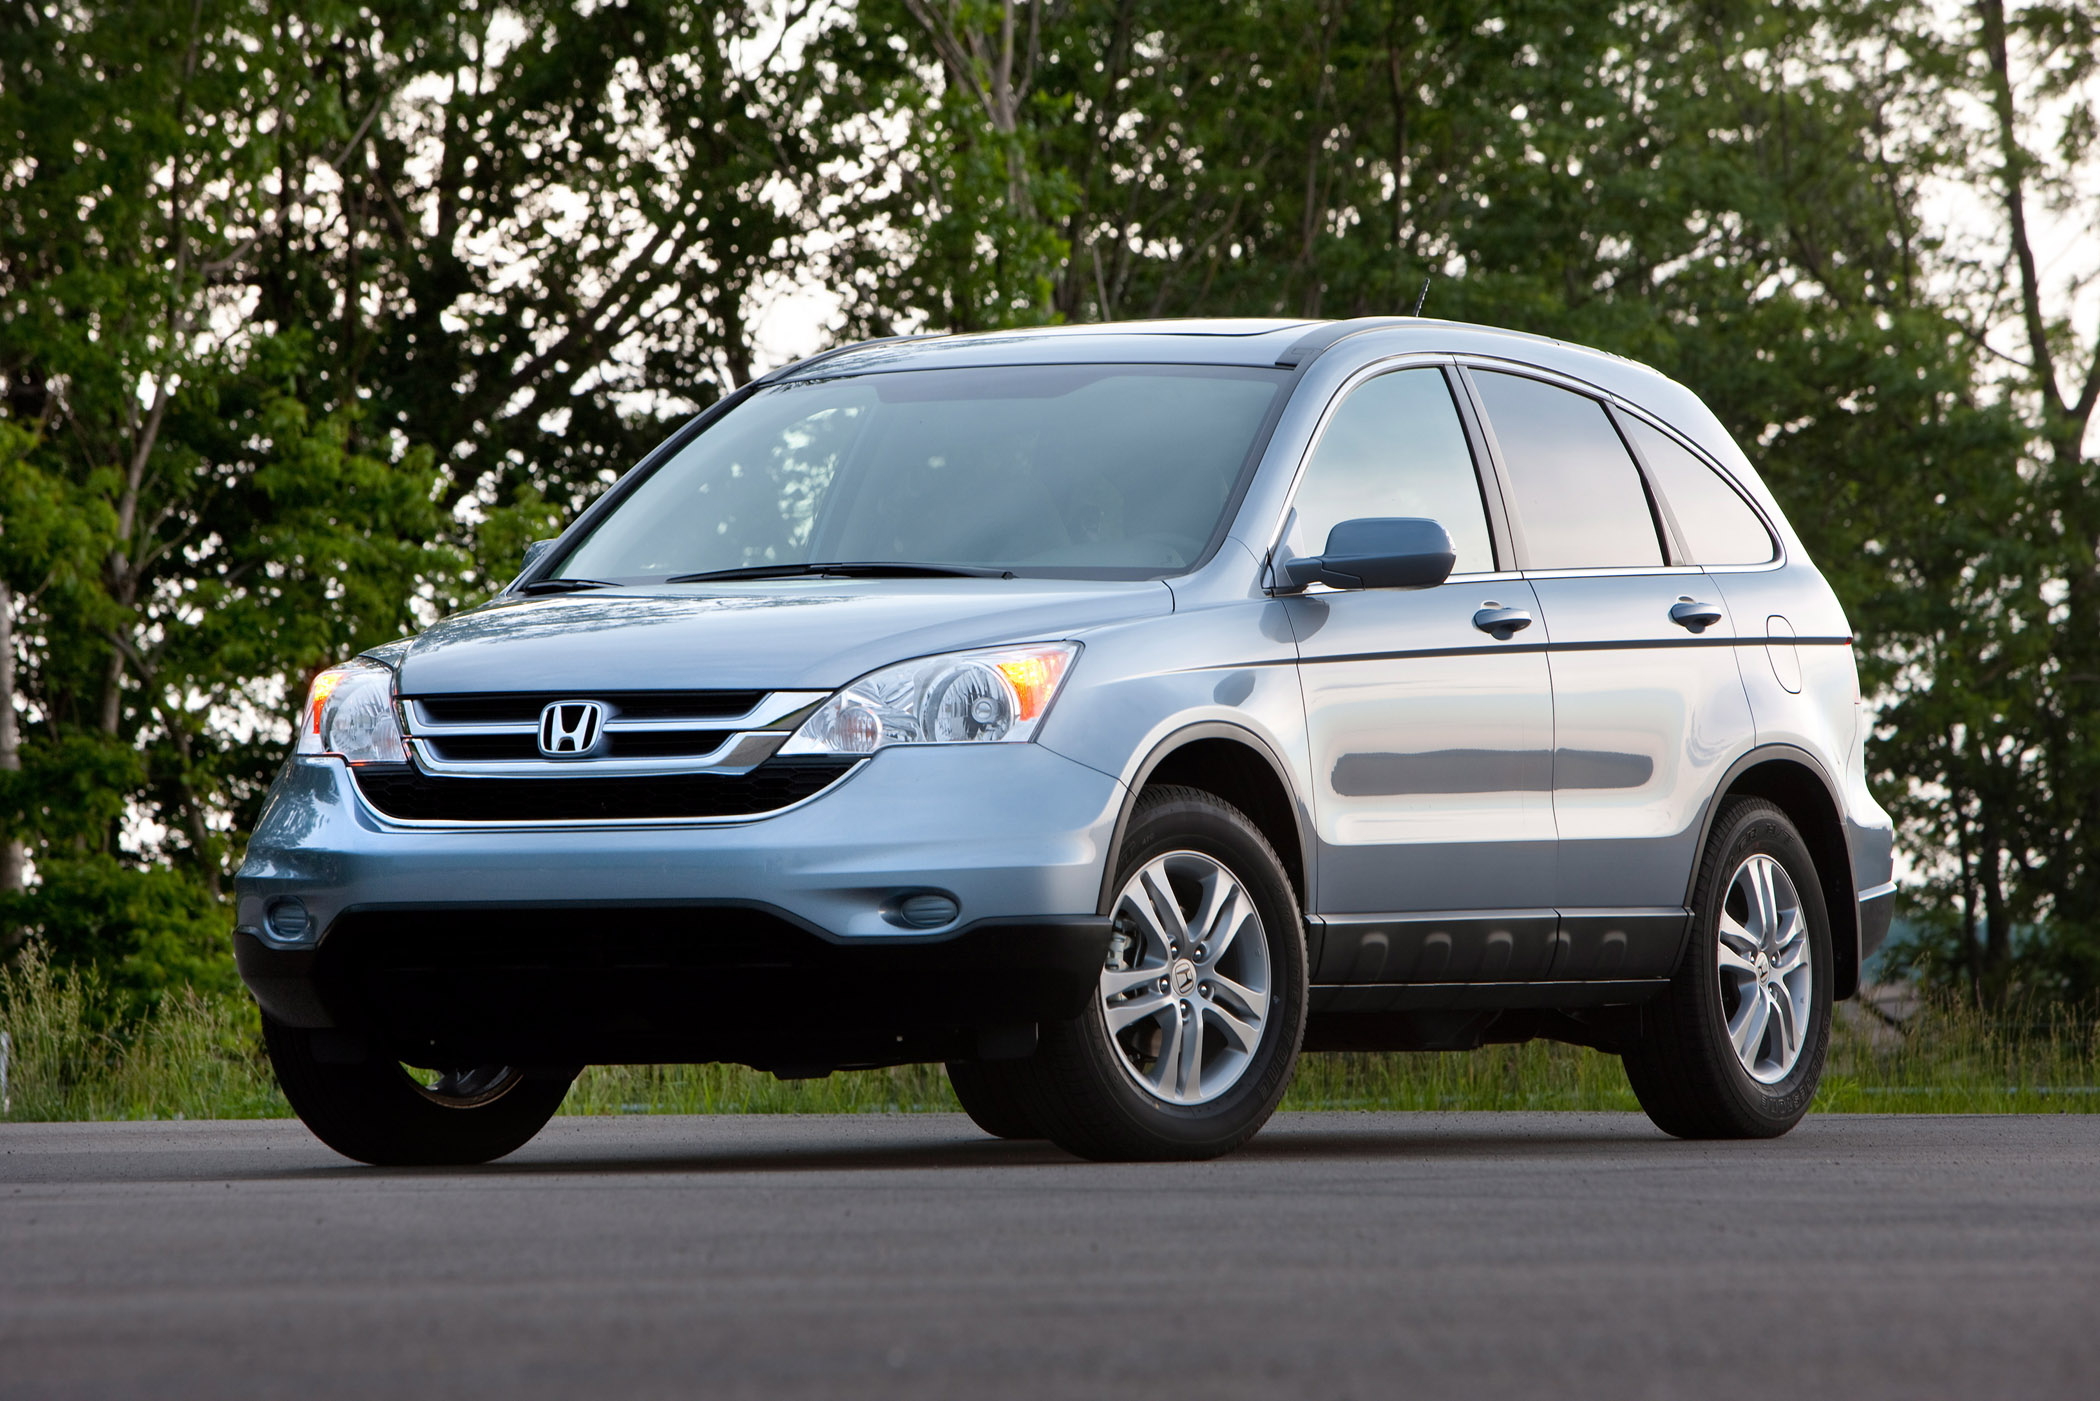 Manufacturer photo: The 2011 Honda CR-V provides an accommodating crossover SUV package with space for up to five passengers and a versatile cargo area for utility